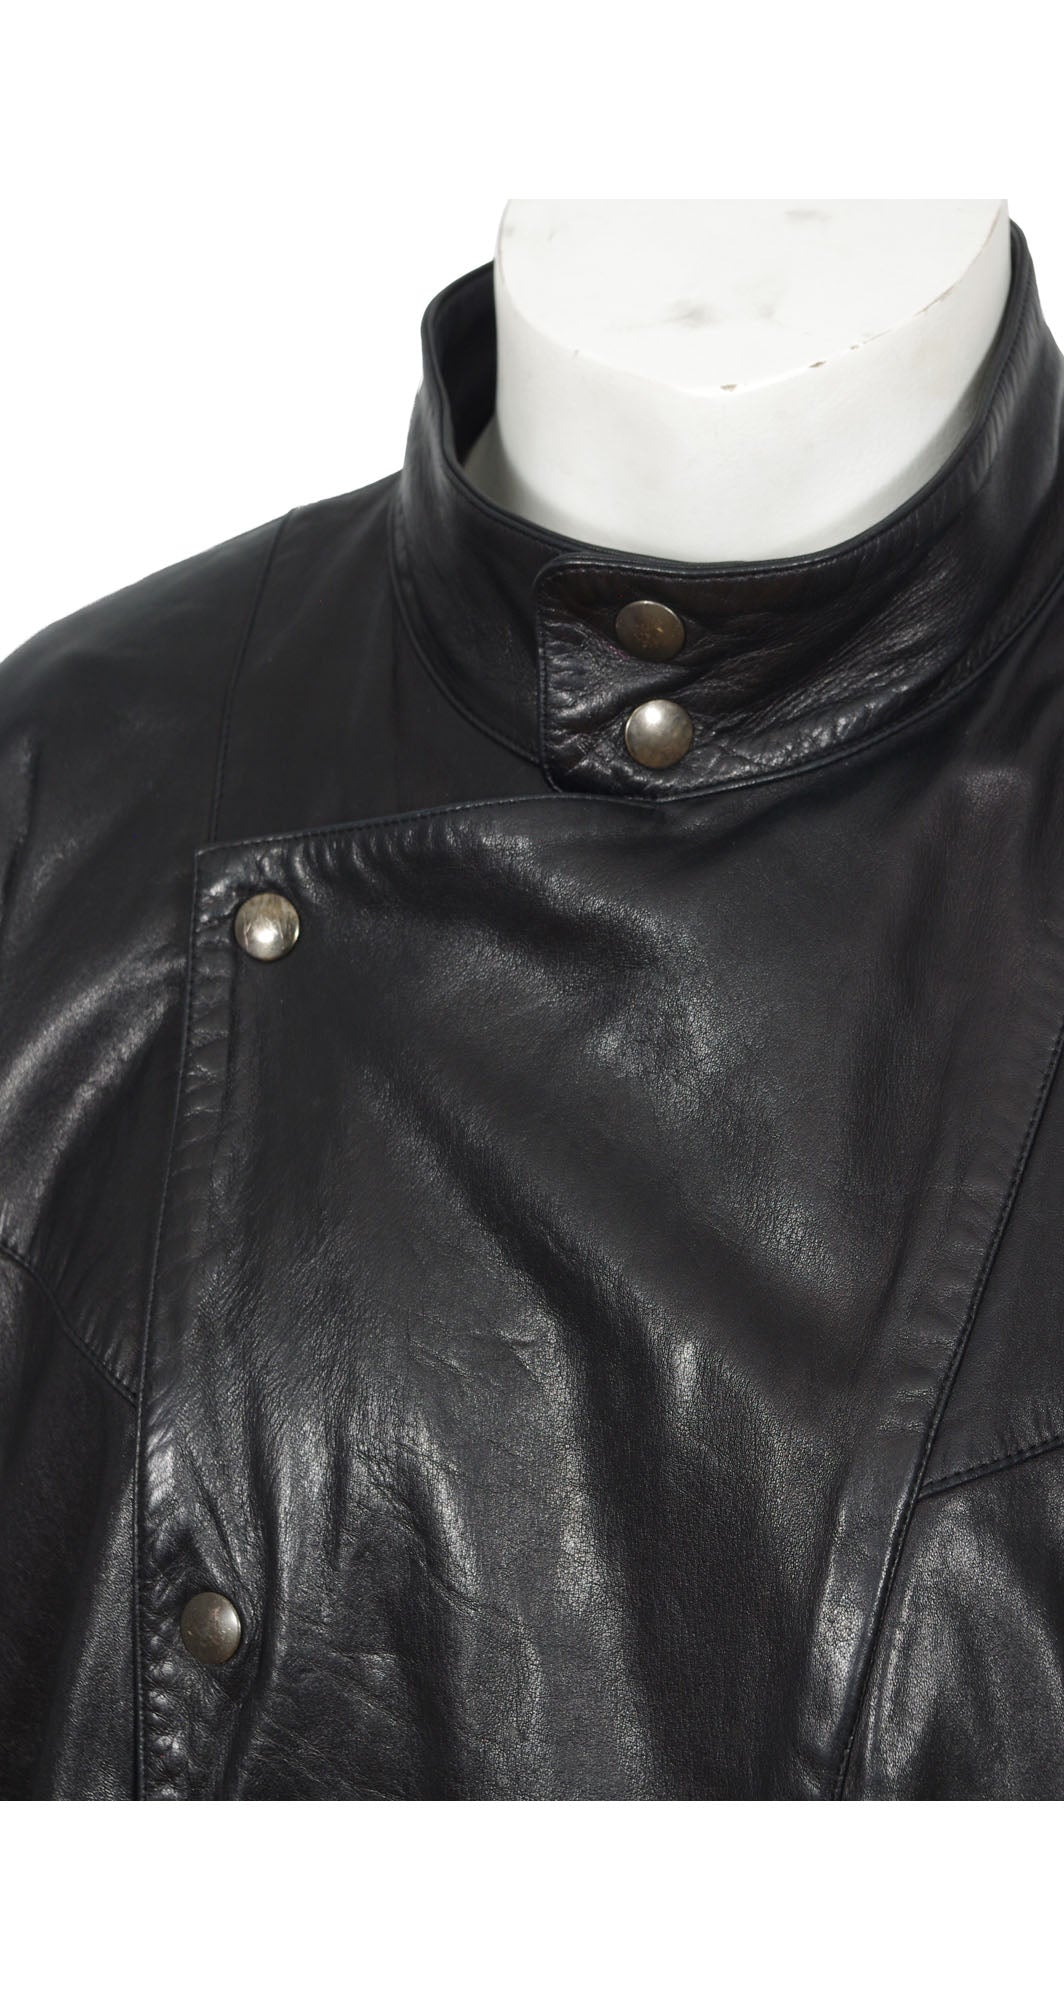 1980s Men's Ideal Cuir Black Leather Jacket